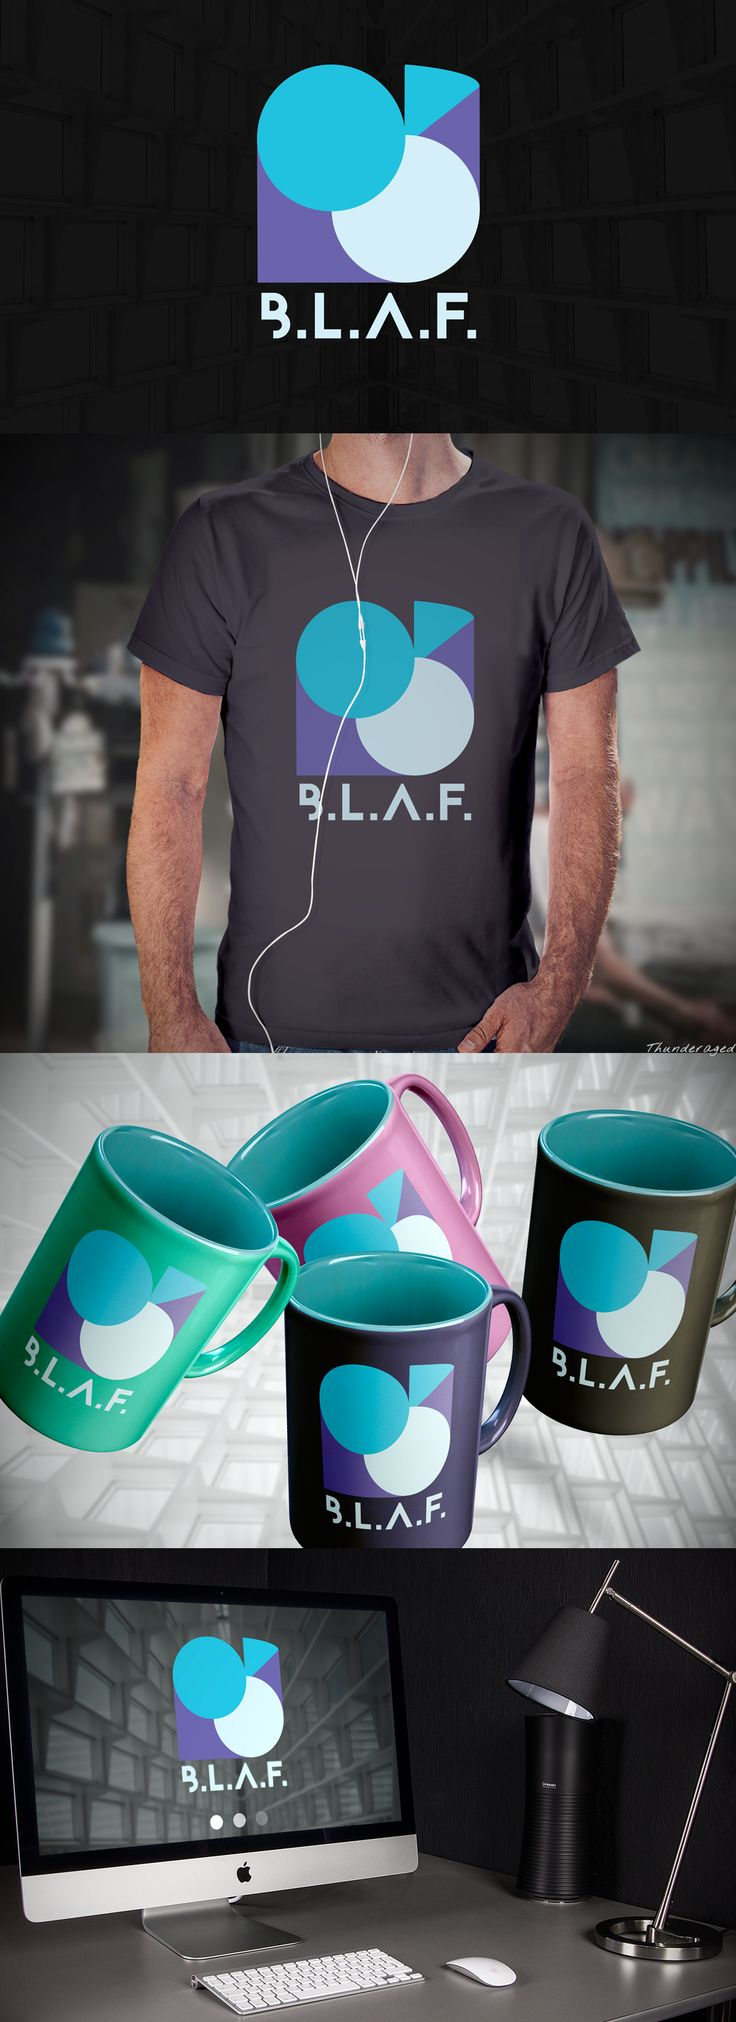 Follow if you want to see more!   #logo #logodesign #logodesigners #graphic #design #graphicdesign #illustrator #graphicdesigners #B.L.A.F. #educational #learning #online #simplelogos #simplycity #logodesignersforhire